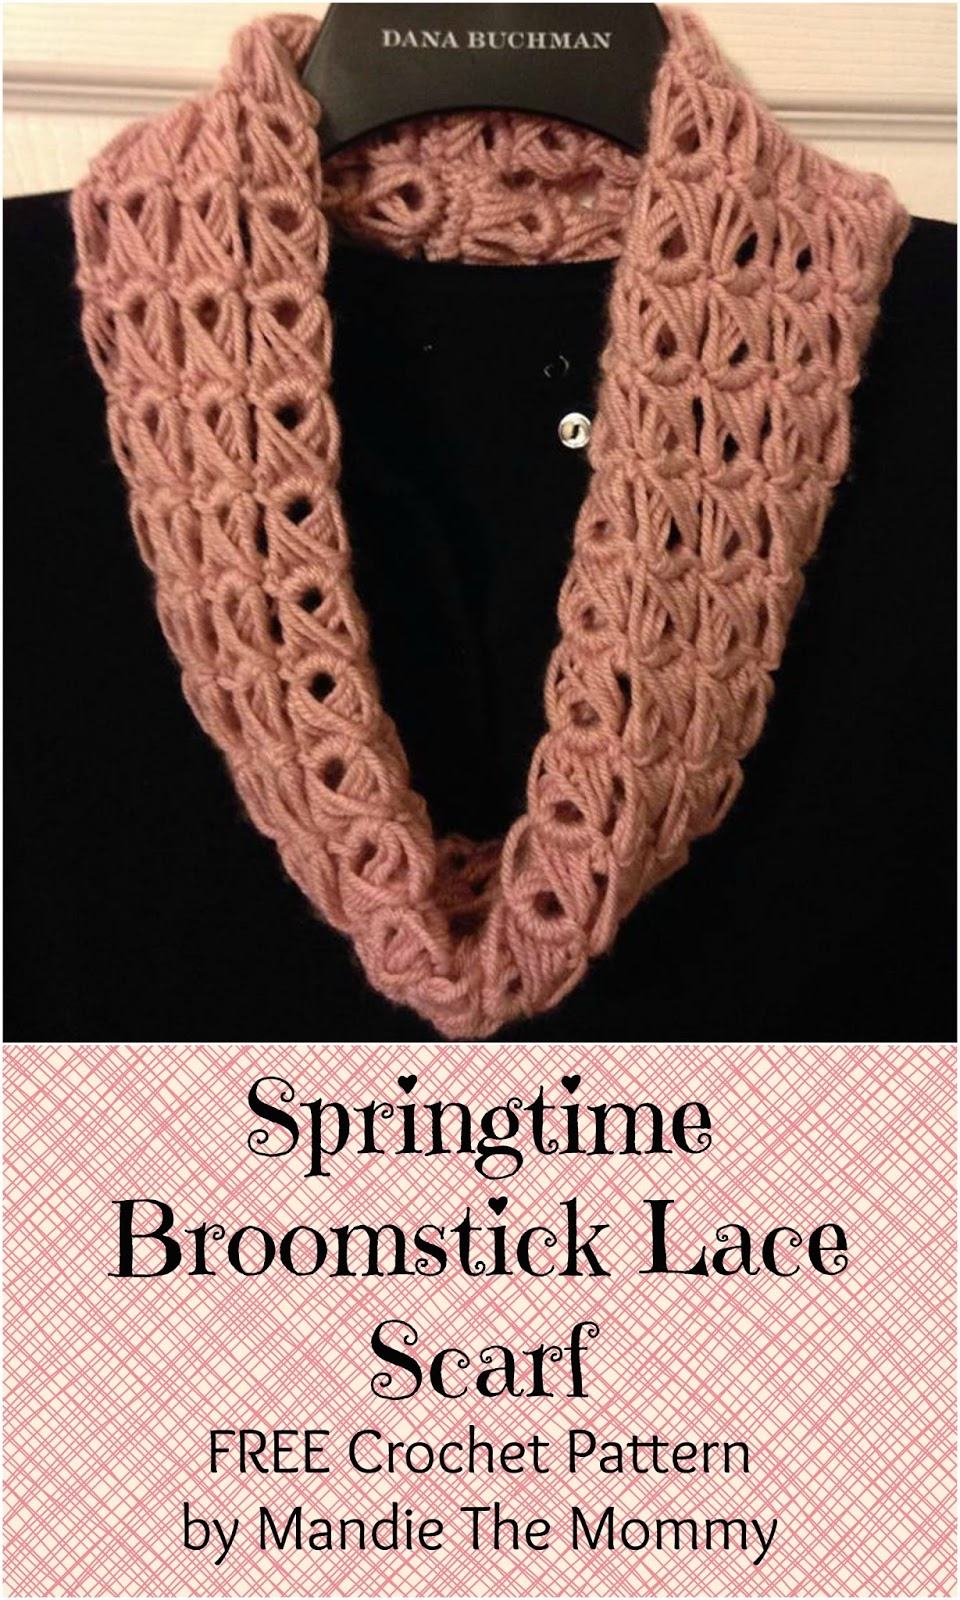 Springtime Broomstick Lace Scarf Free Pattern